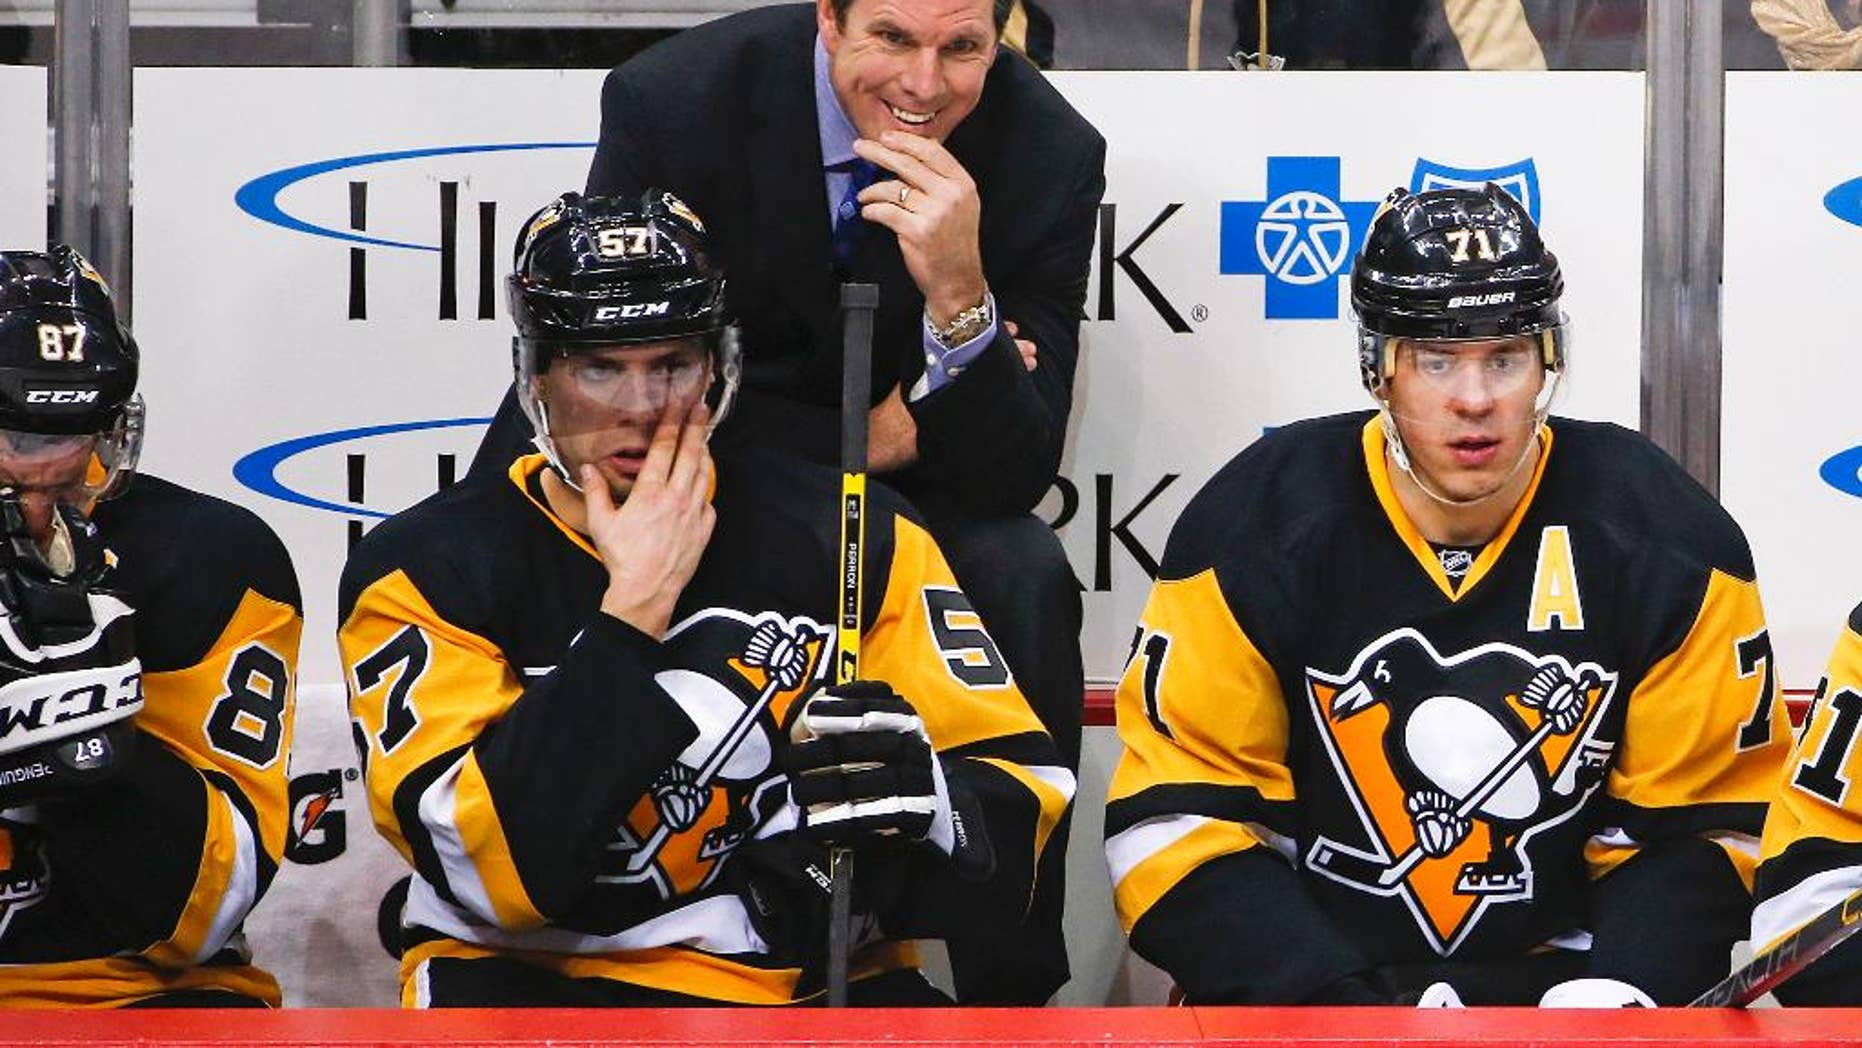 FILE - In this Jan. 2, 2016, file photo, Pittsburgh Penguins head coach Mike Sullivan stands behind David Perron (57), and Evgeni Malkin (71) during an NHL hockey game against the New York Islanders in Pittsburgh. The Penguins are on the cusp of a fourth Stanley Cup in large part to coach Sullivan's uncanny ability to get the attention of a struggling player. (AP Photo/Gene J. Puskar, File)